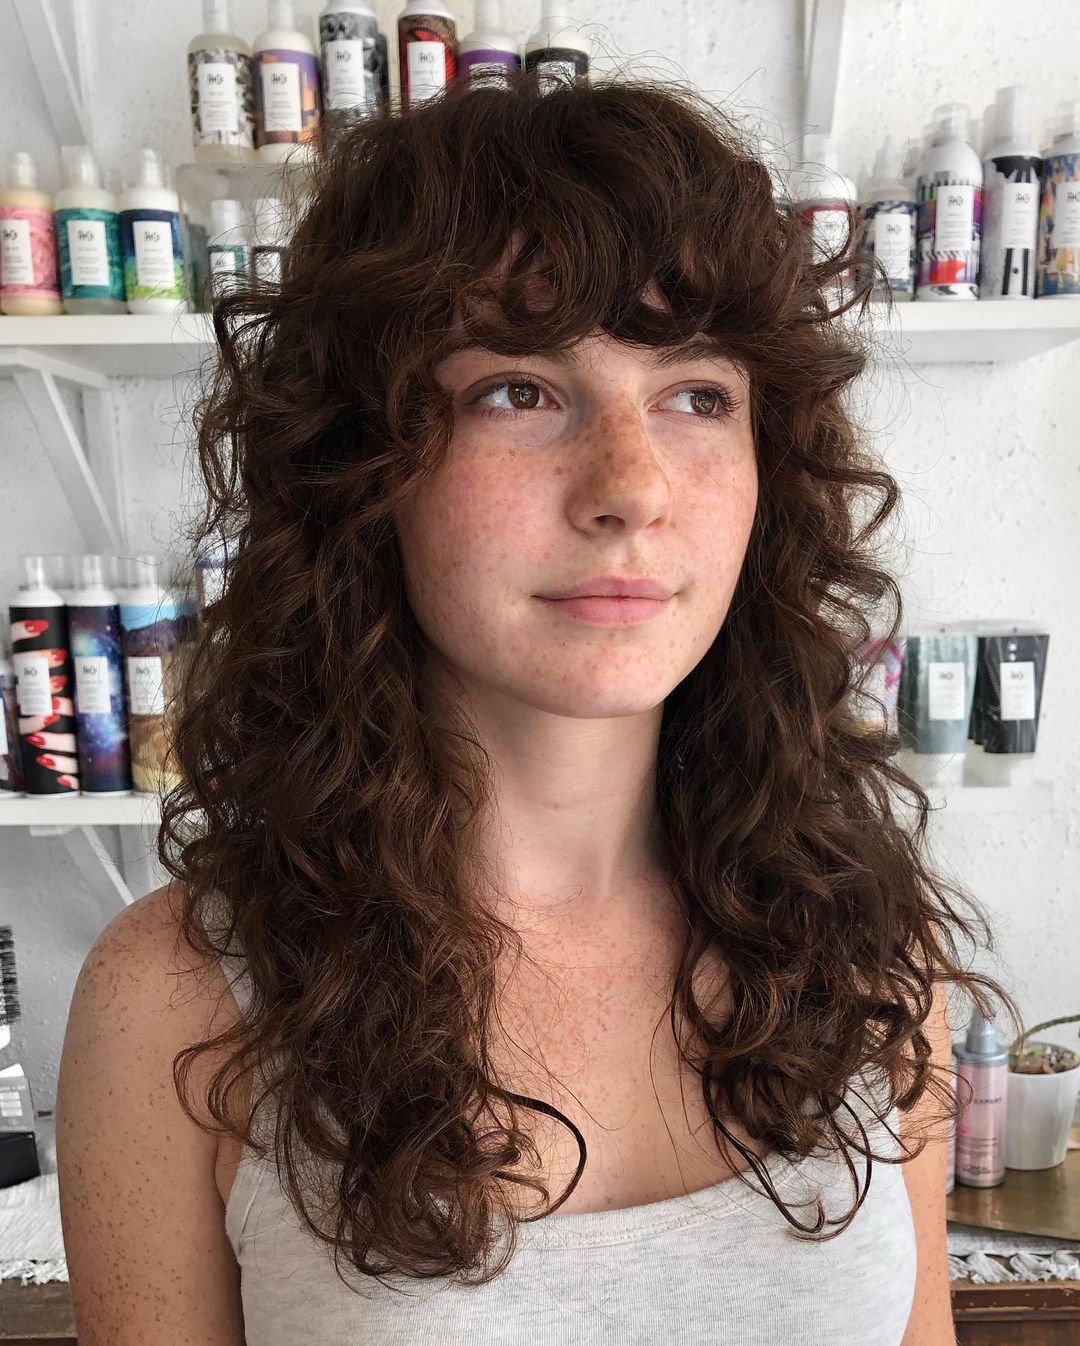 Impressive Shag Cut for Long Curly Hair with Curly Fringe